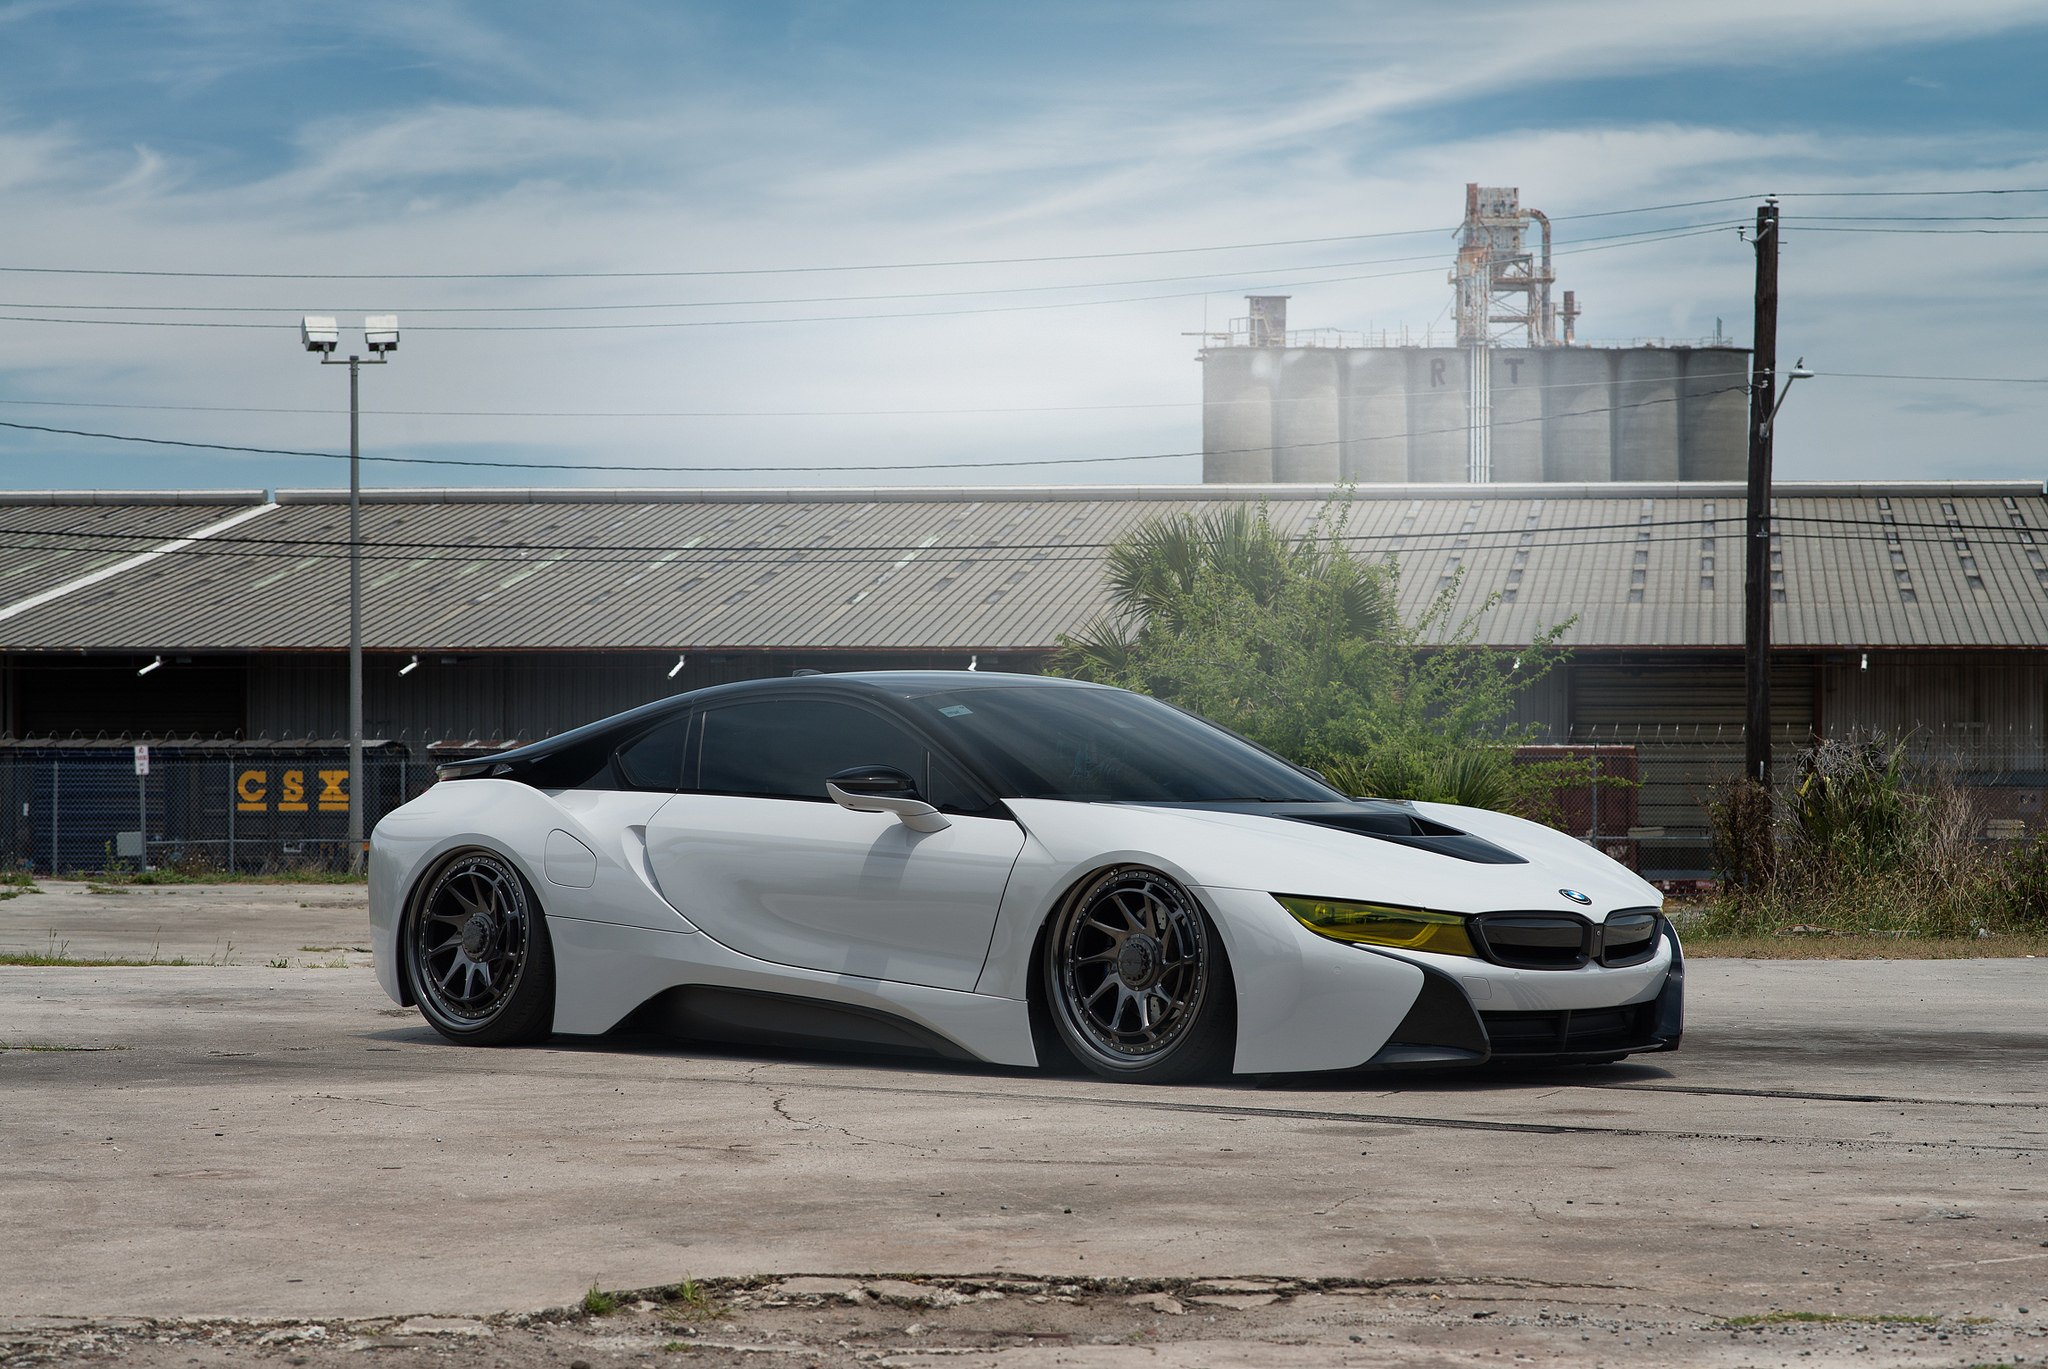 Bmw I8 Slammed To The Ground Featuring Rotiform Gloss Black Wheels